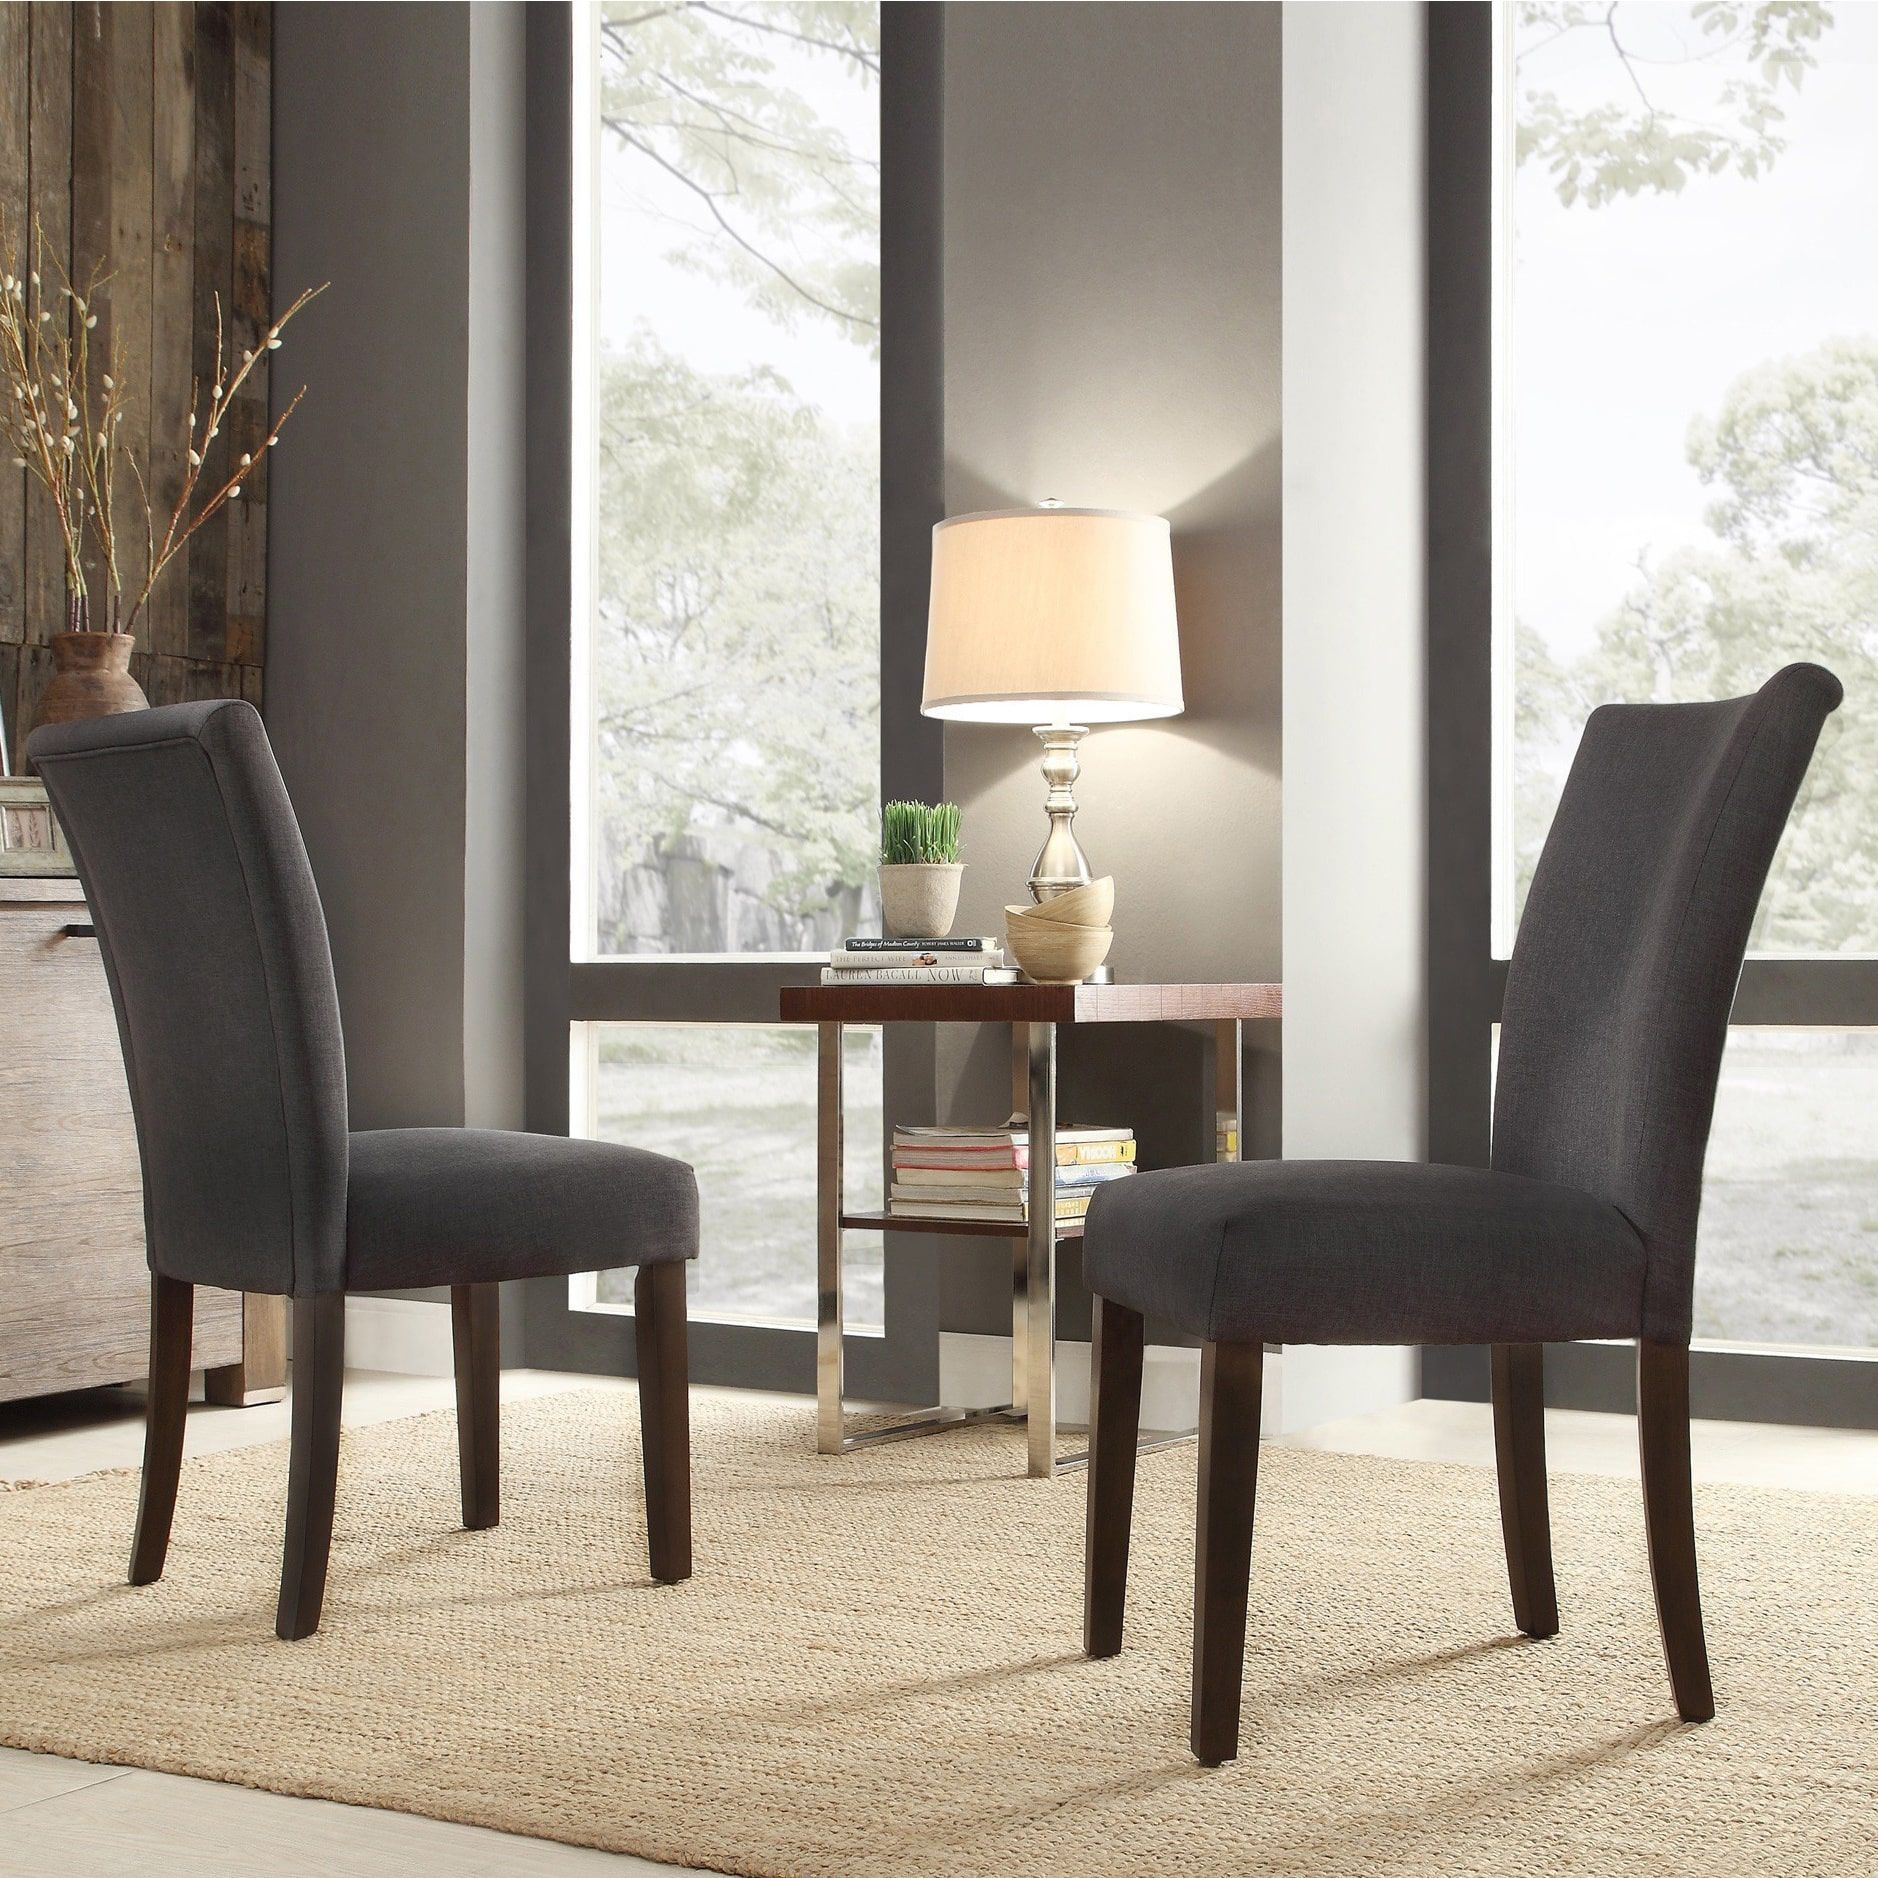 Catherine Parsons Dining Chair (Set of 2) by iNSPIRE Q Bold (Dark Gray